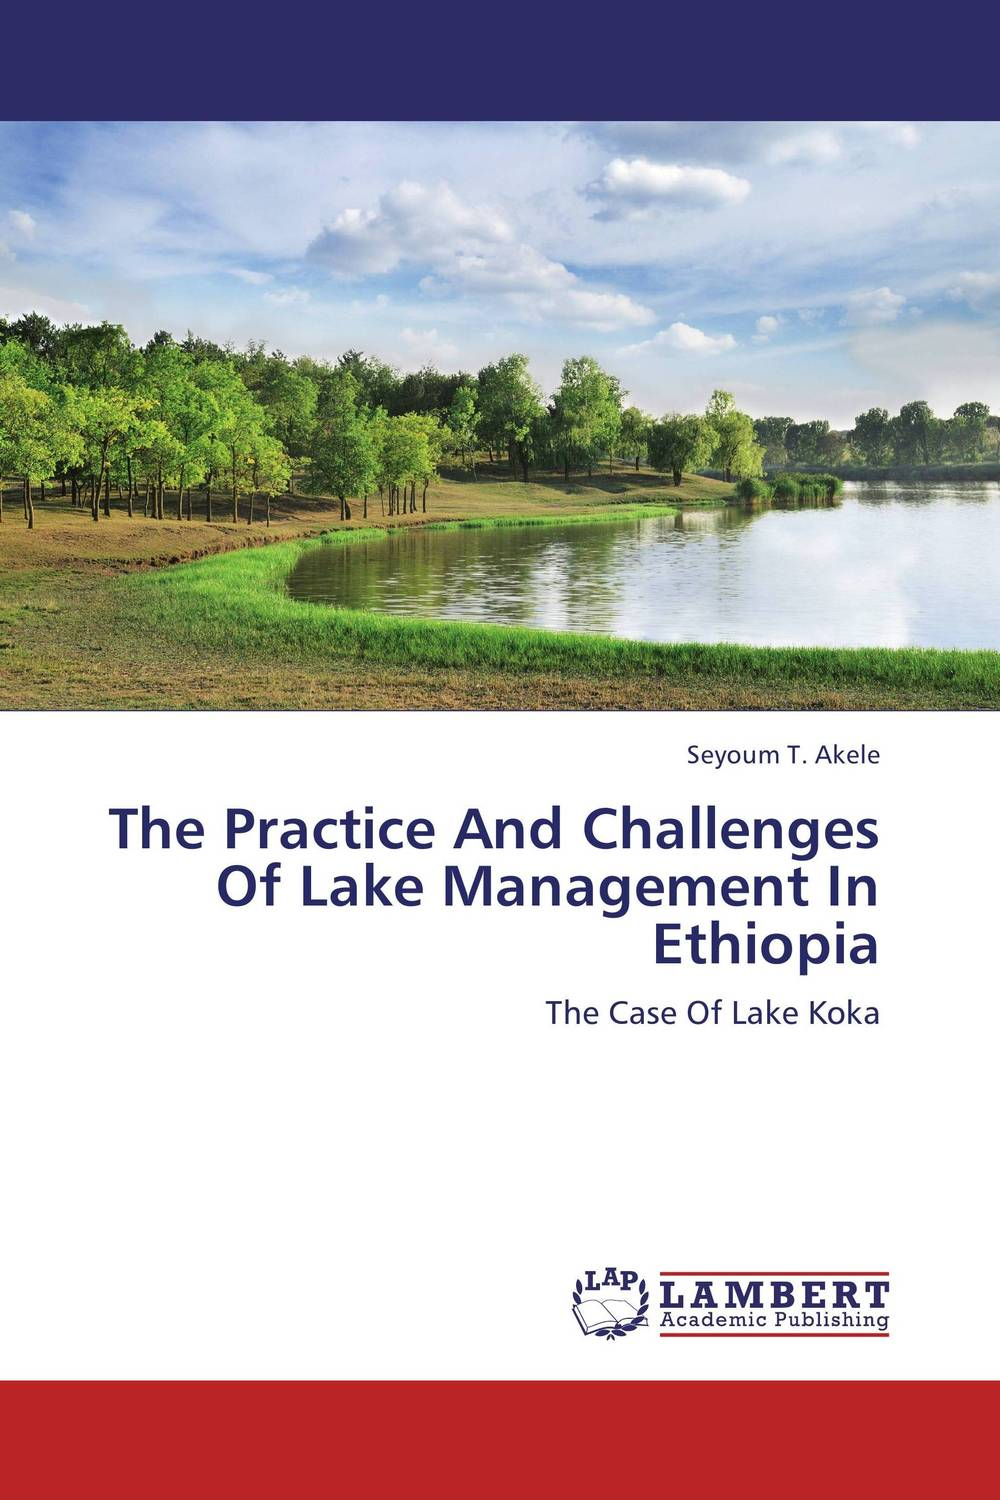 The Practice And Challenges Of Lake Management In Ethiopia humanizing globalization practice of multi stakeholder regulation